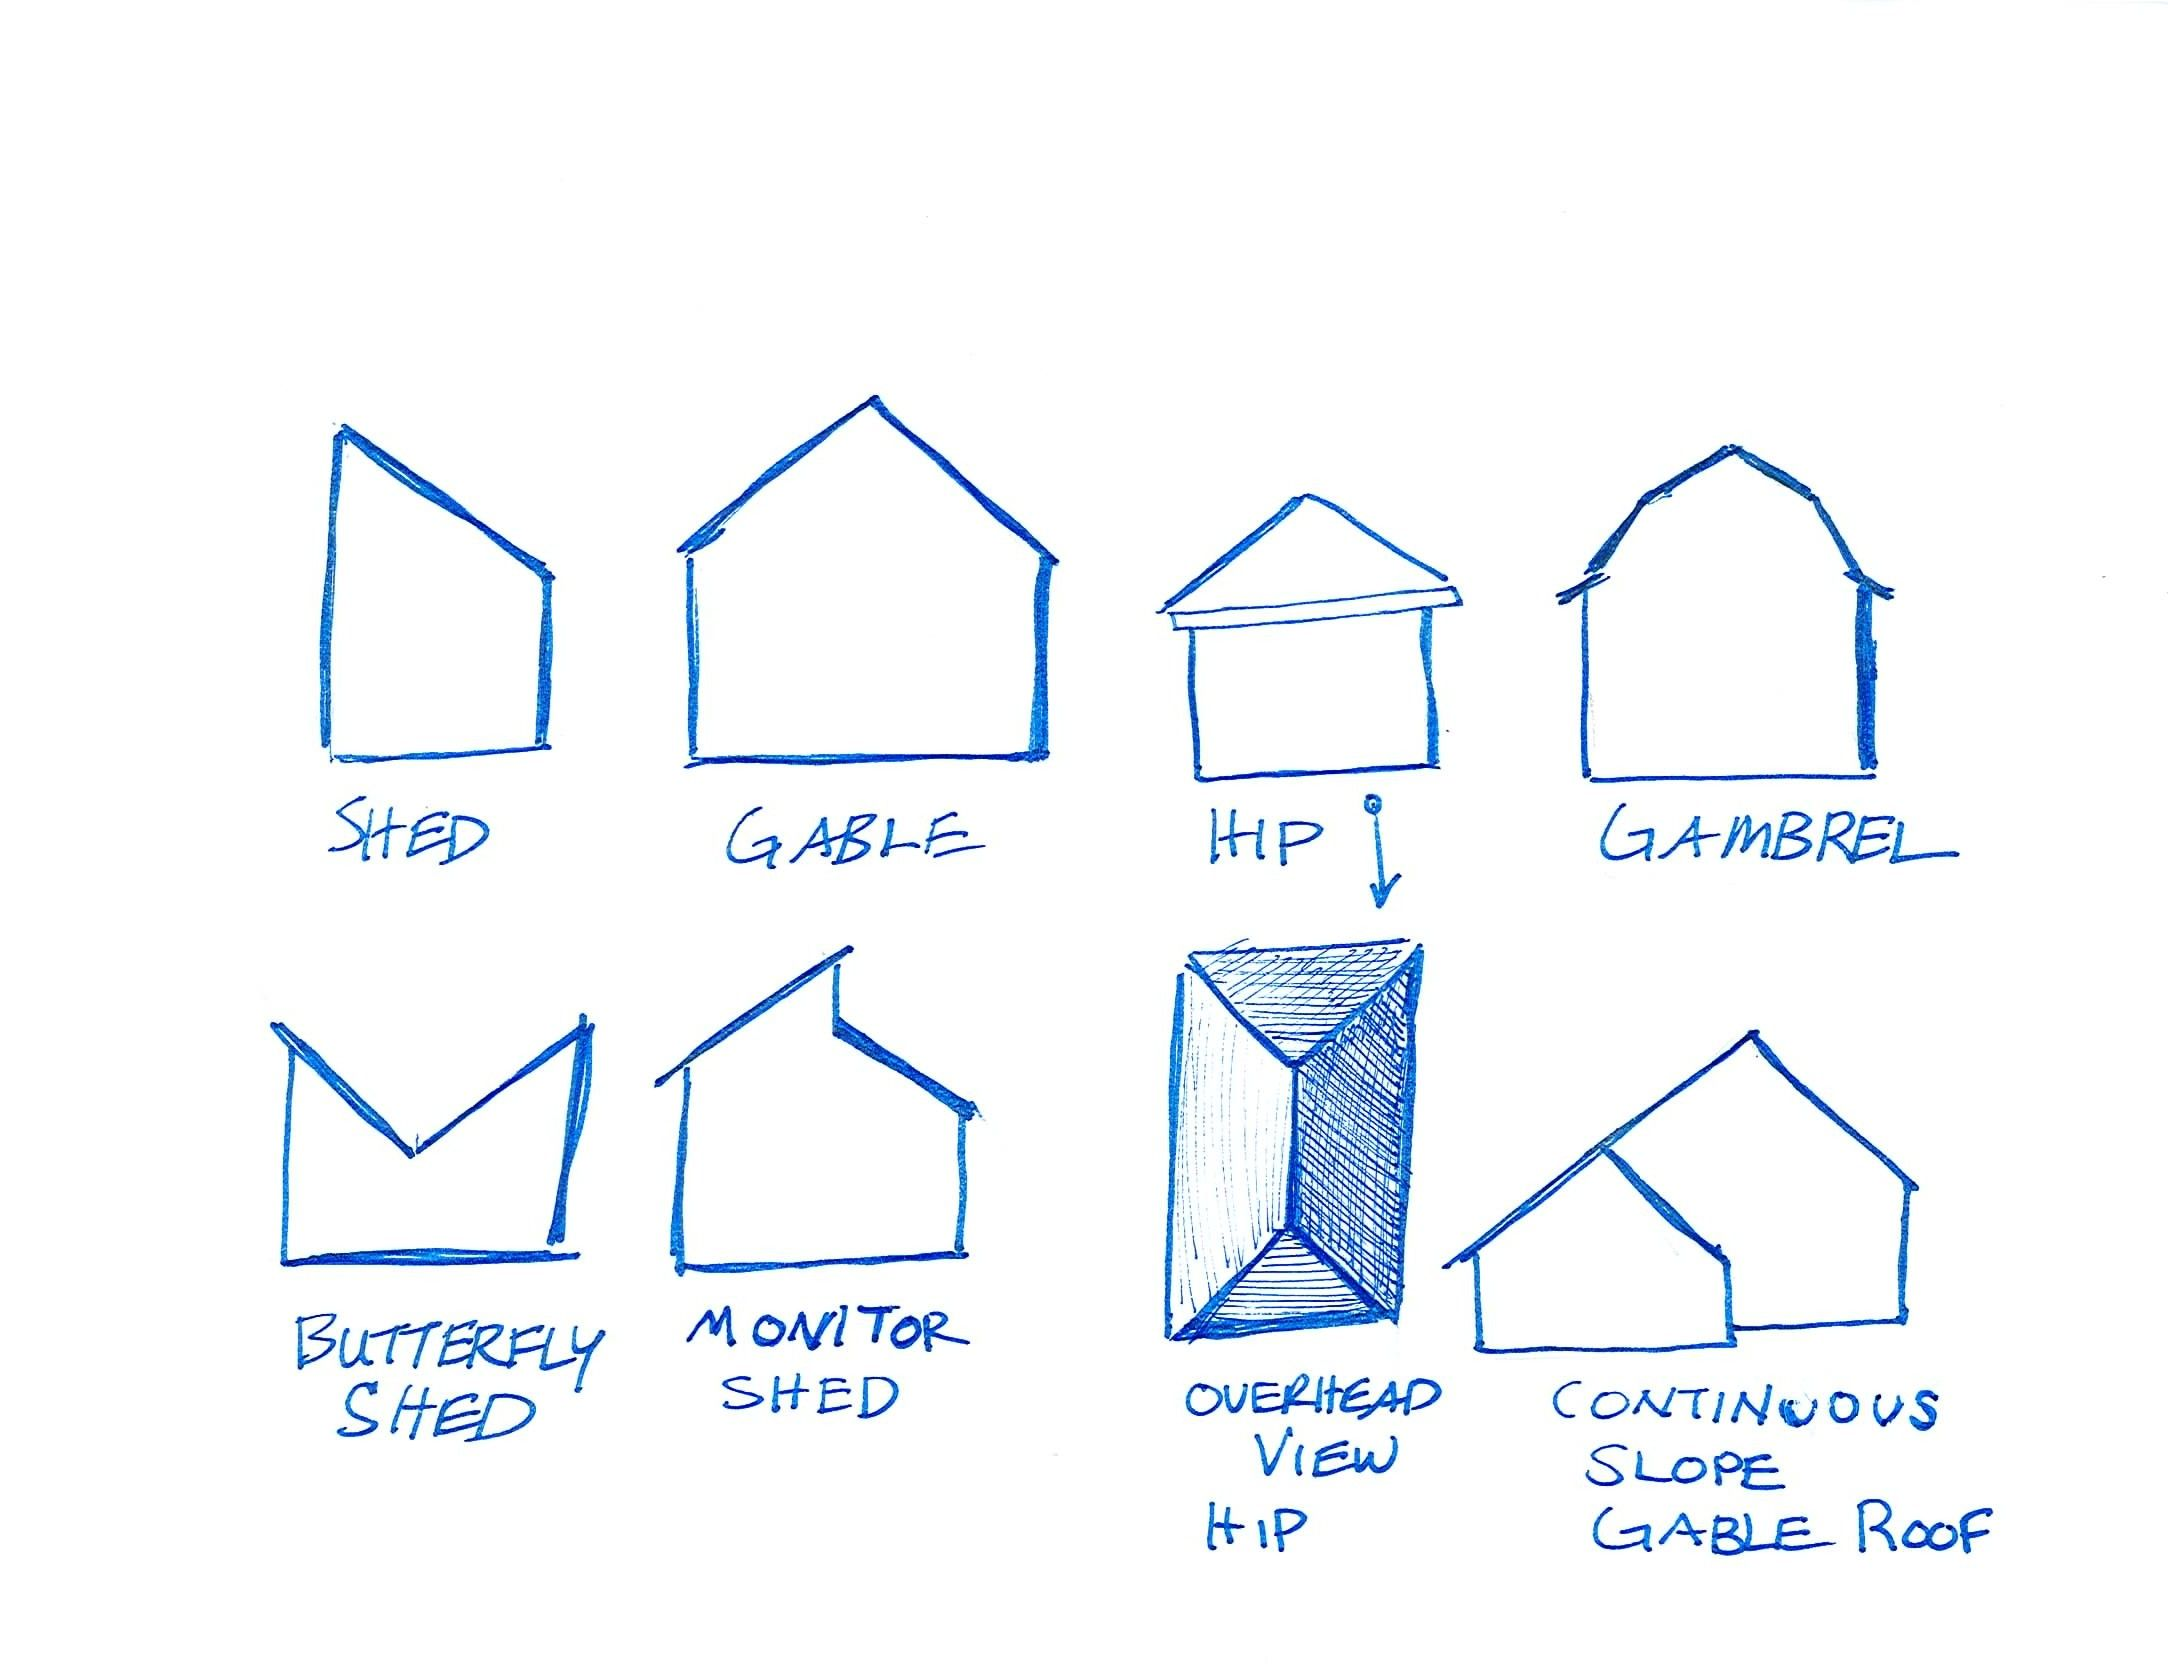 Hip roof vs gable roof and its advantages u disadvantages